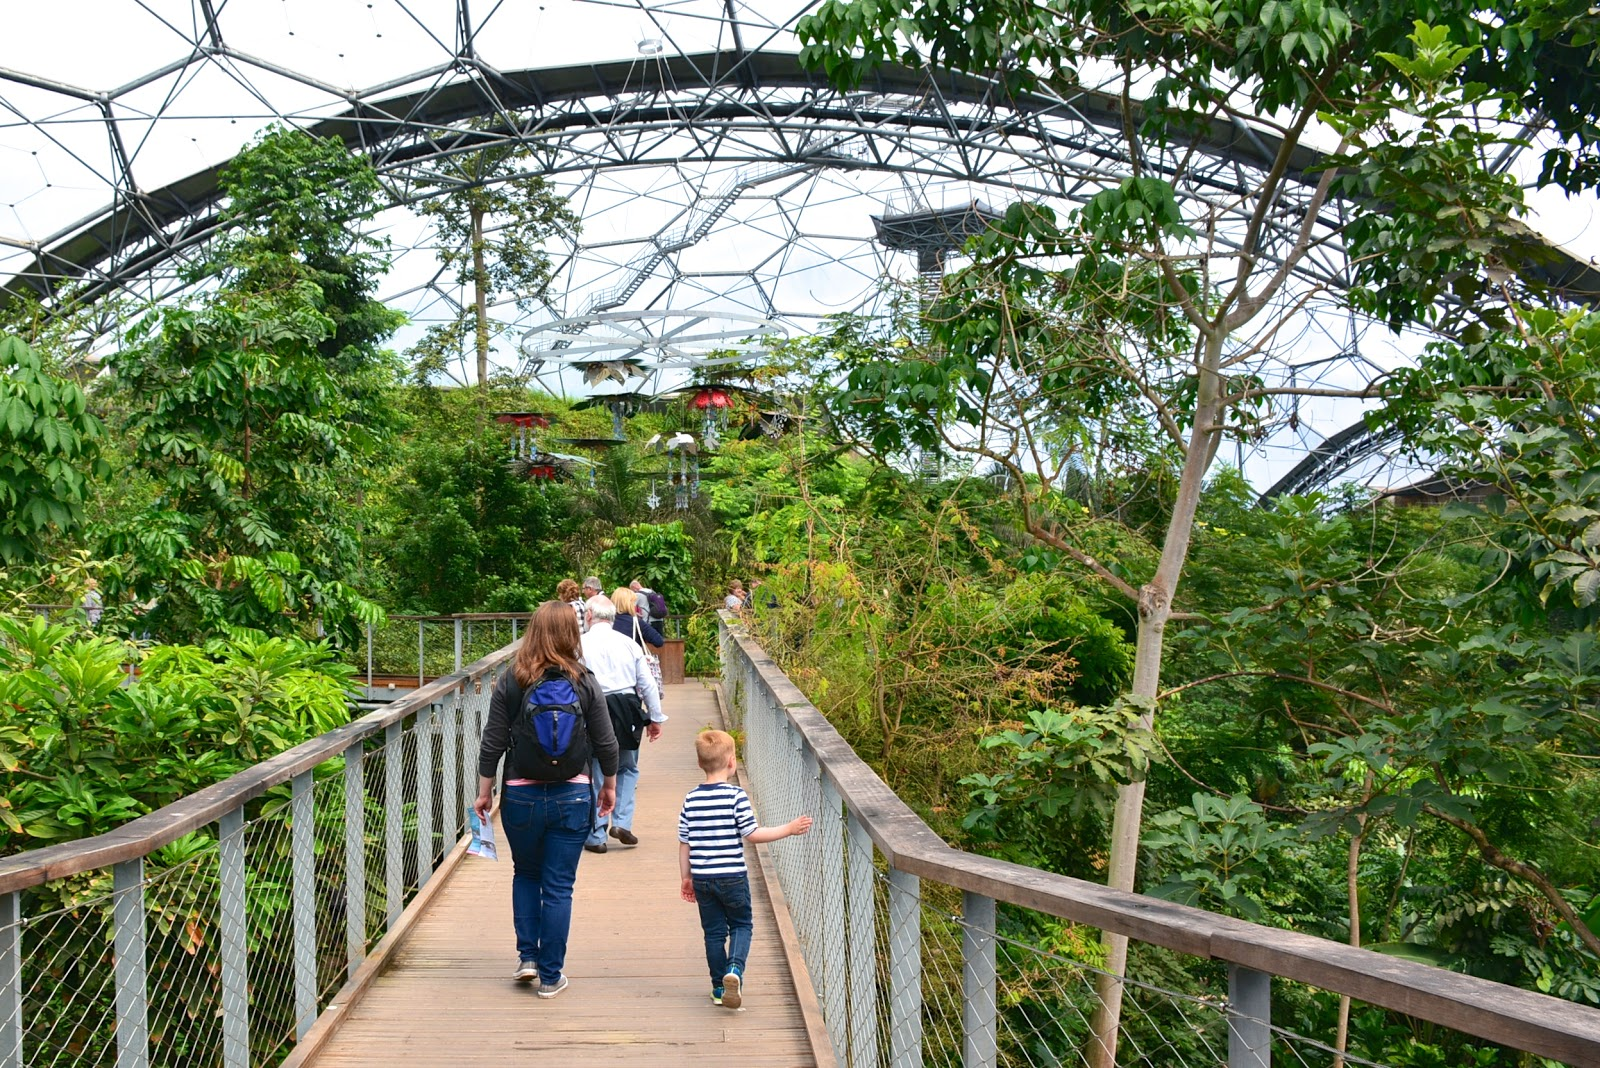 Rainforest biome in the Eden Project, Cornwall